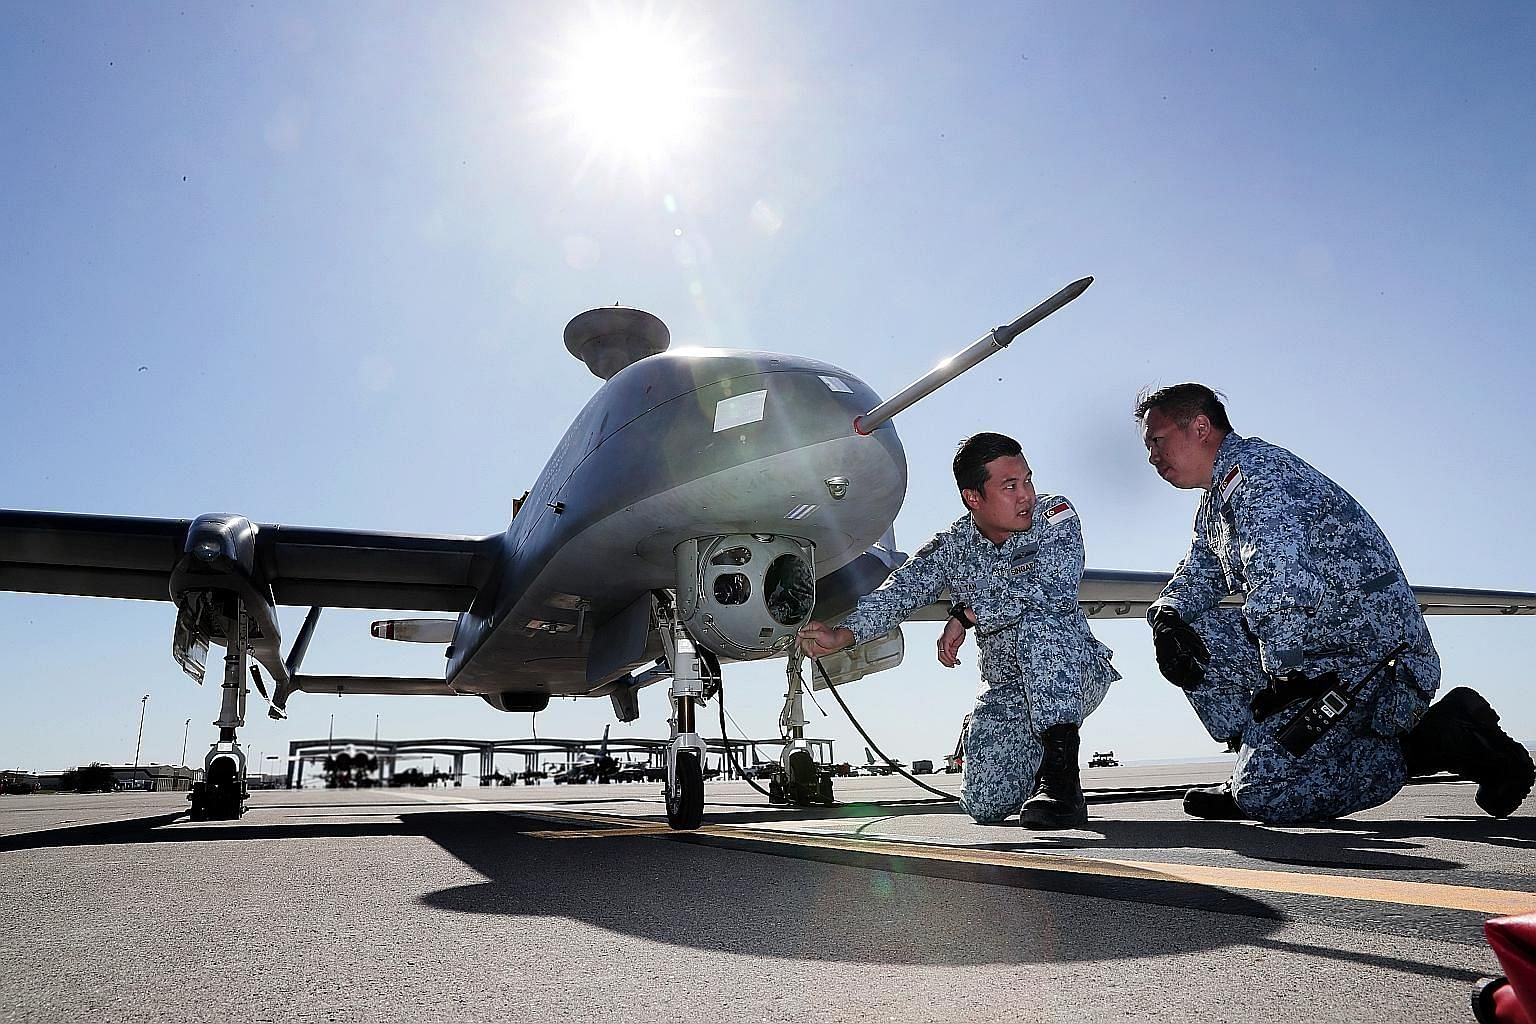 Pilot Tan Chin-I (left) and air force engineer The Jia Bao conducting checks on the Heron 1 unmanned aerial vehicle before a mission during Exercise Forging Sabre at the Mountain Home Air Force Base in the US state of Idaho on Monday. The exercise, i